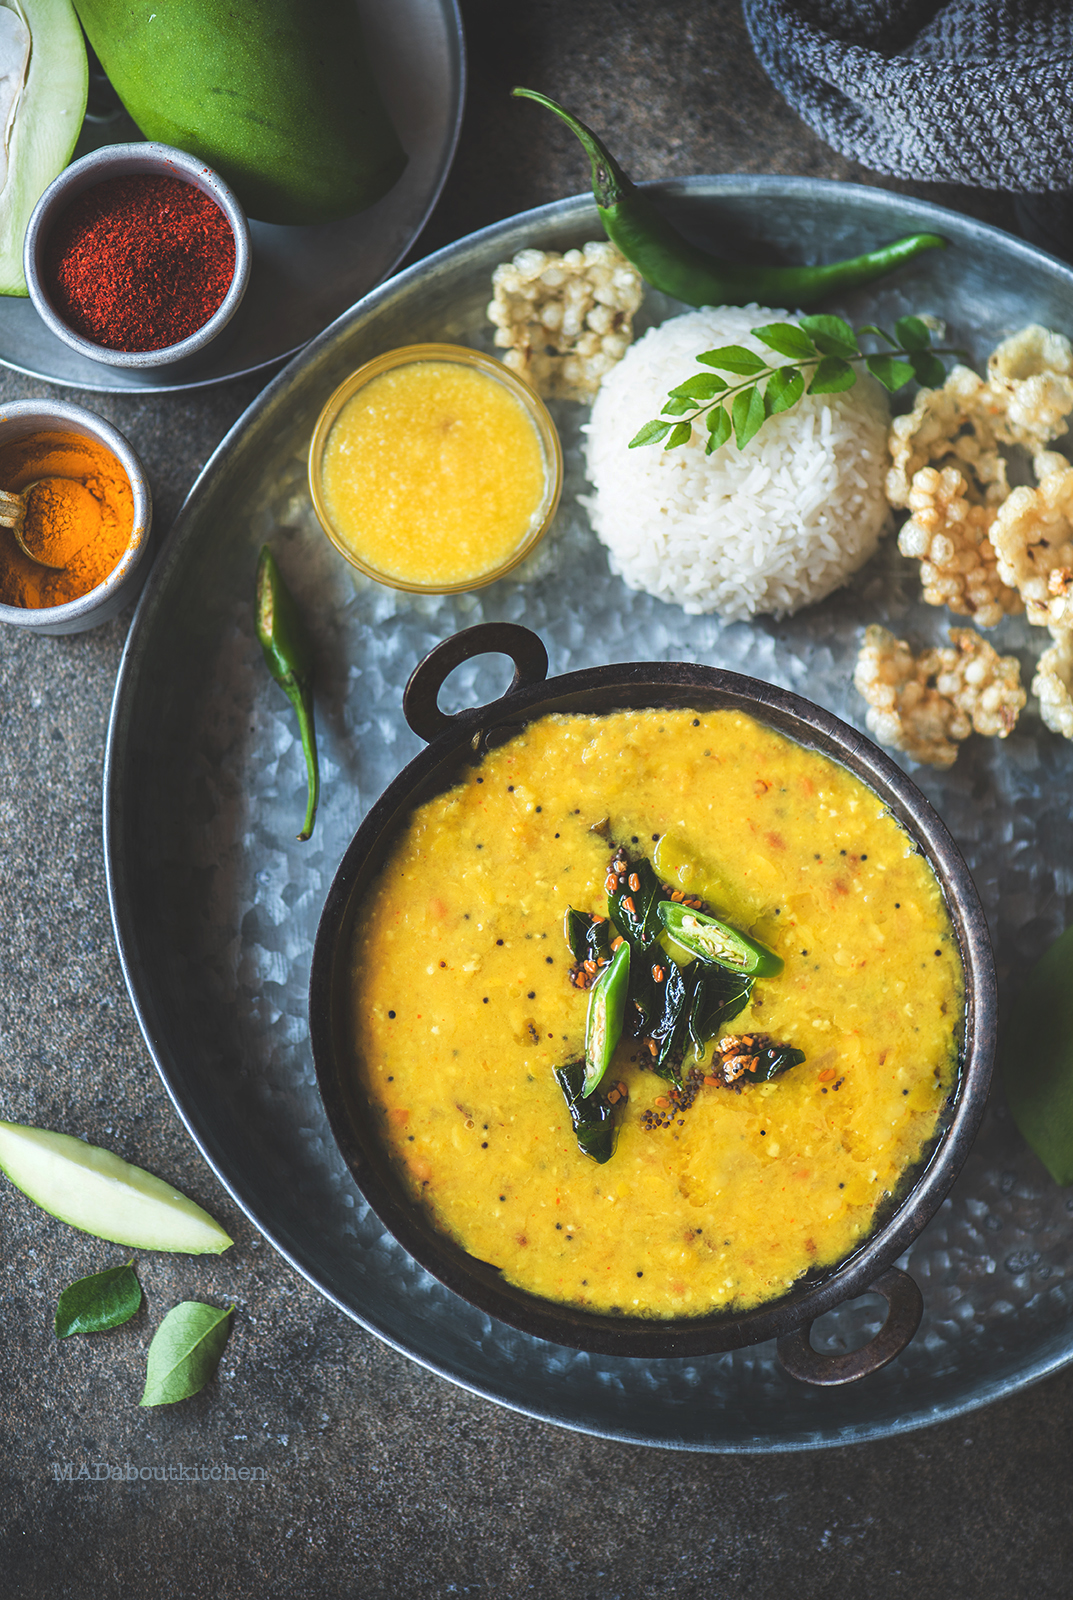 Mamidikaaya Pappu or the raw mango curry is a speciality from Andhra Pradesh. The sour ,spicy curry is served with steamed rice and ghee and some fryums.